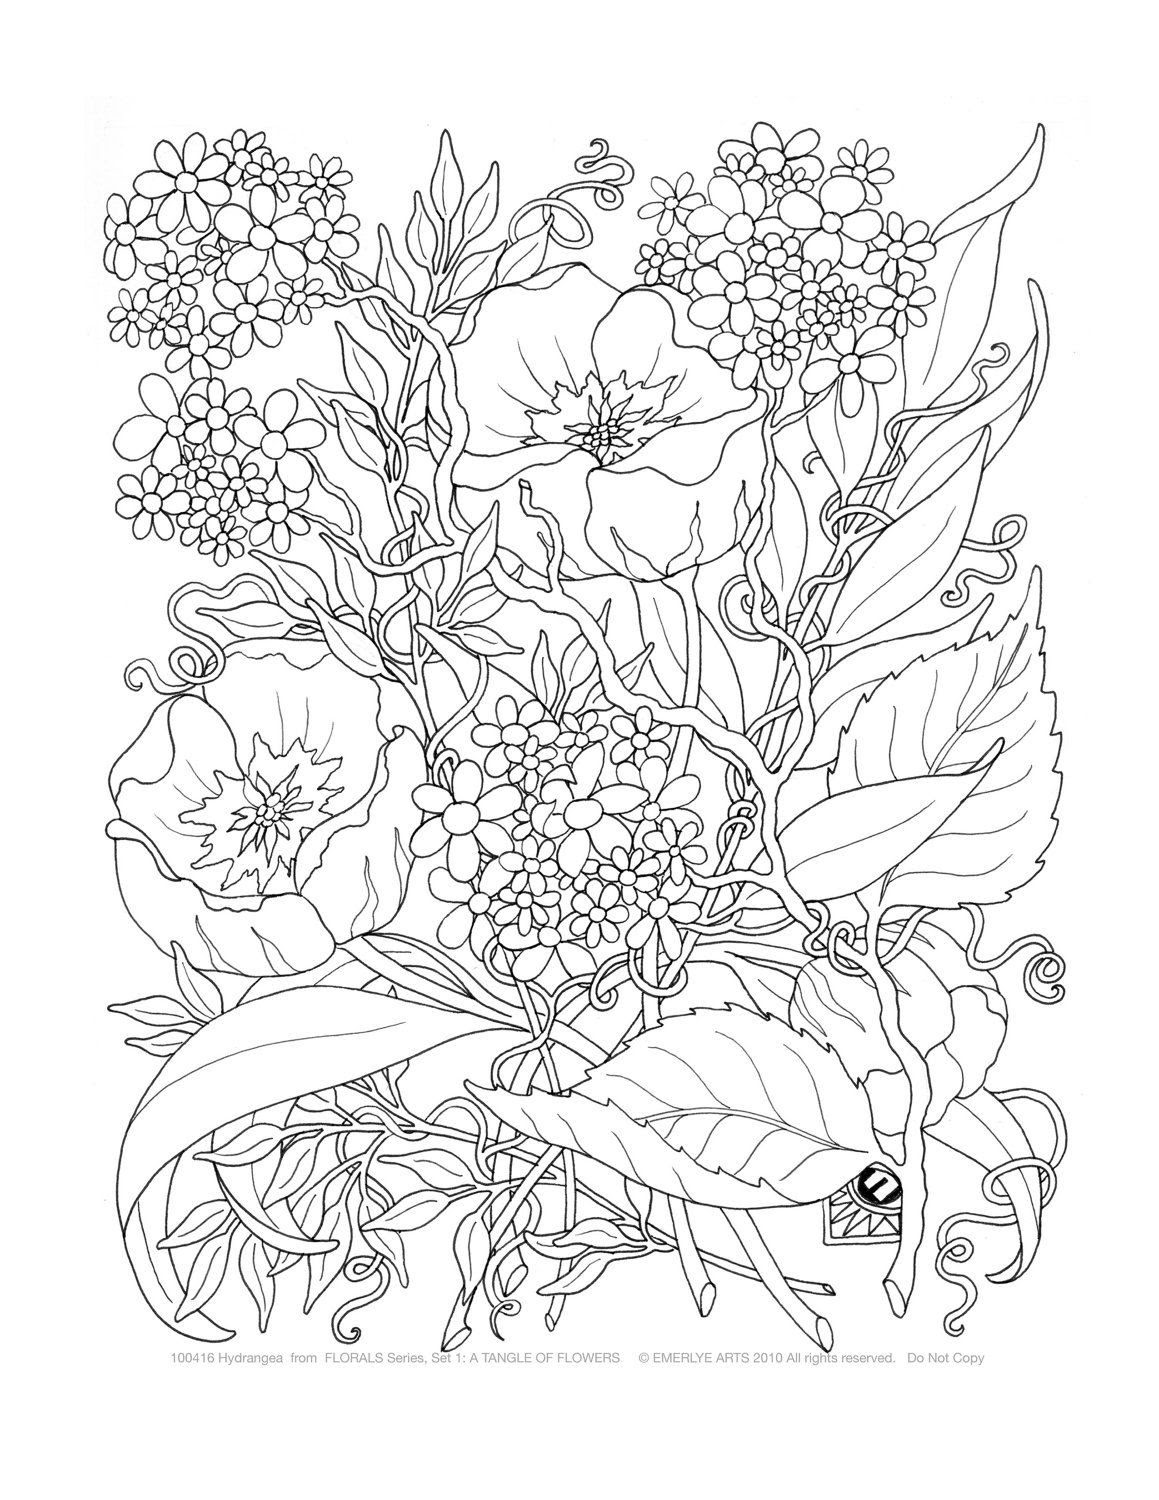 Download Free Hard Coloring Sheets Printable Free Coloring Coloring Pages 6 Coloring Pages Tagged With Coloring Pages For Teenagers Difficult Jpg Coloring Pages For Girls Adult Difficult Coloring Pages Free Printable Best